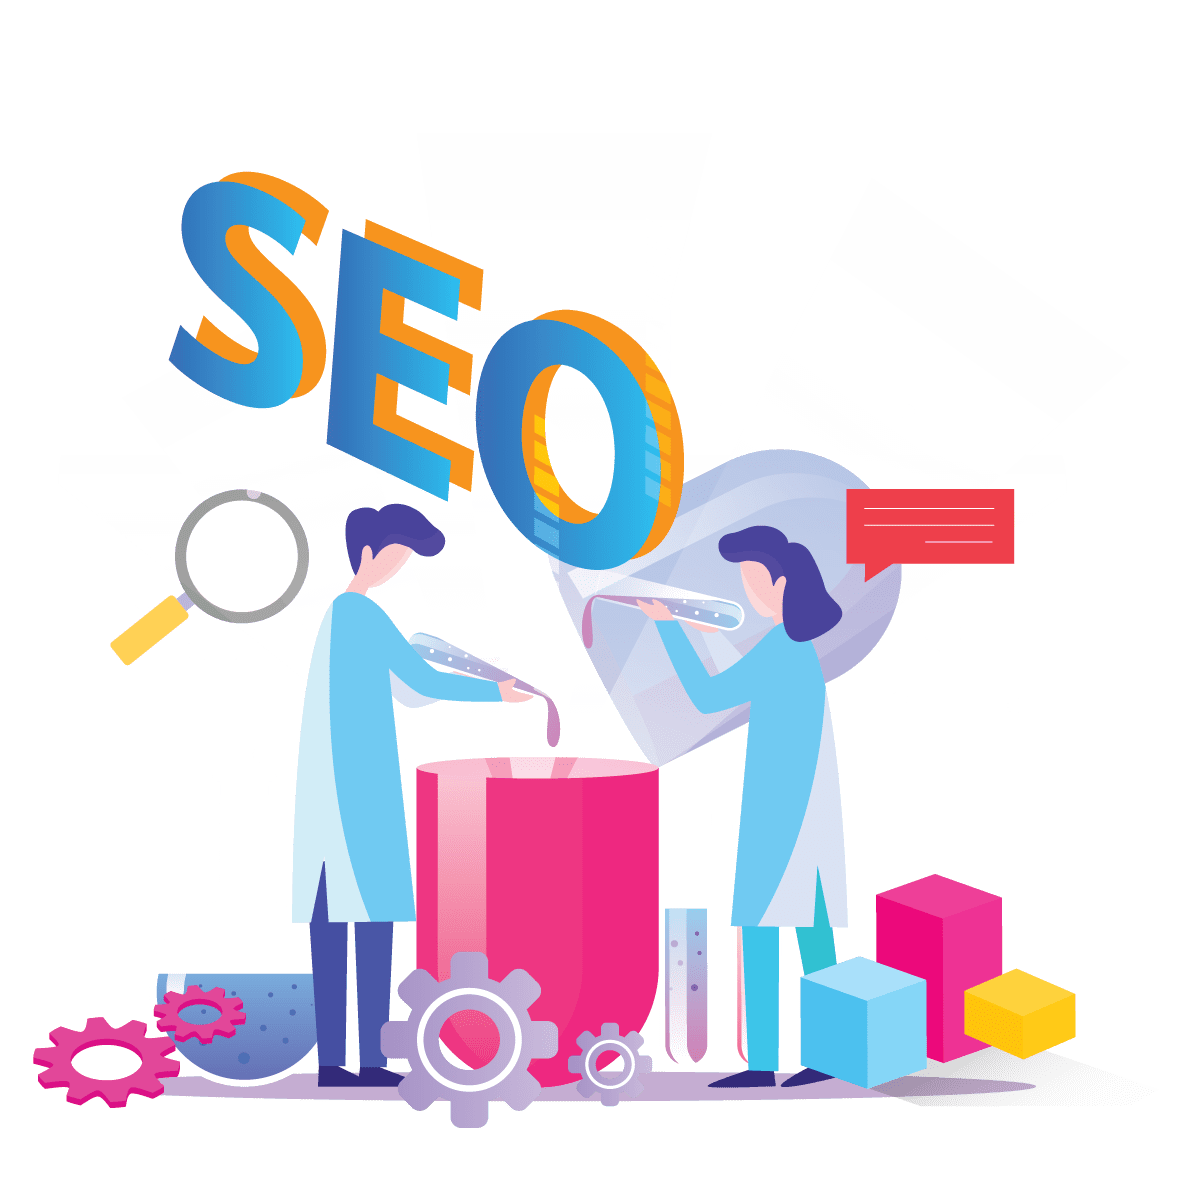 customized seo services by freelancers hub